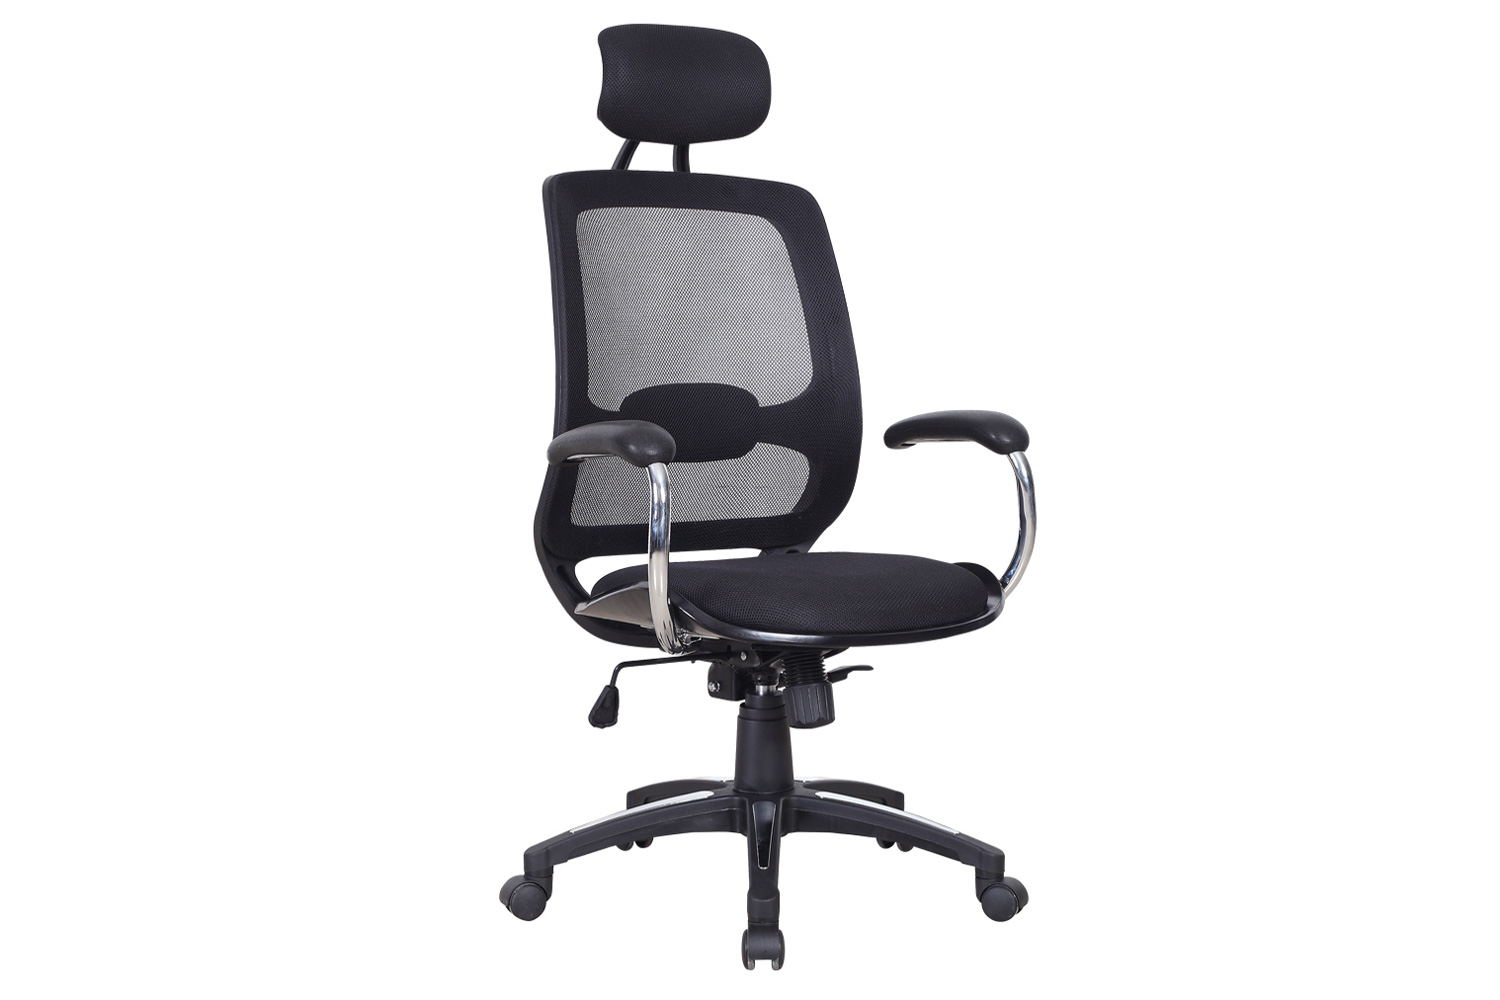 desk chair harvey norman captain seat covers getting the kids ready for their exams  go